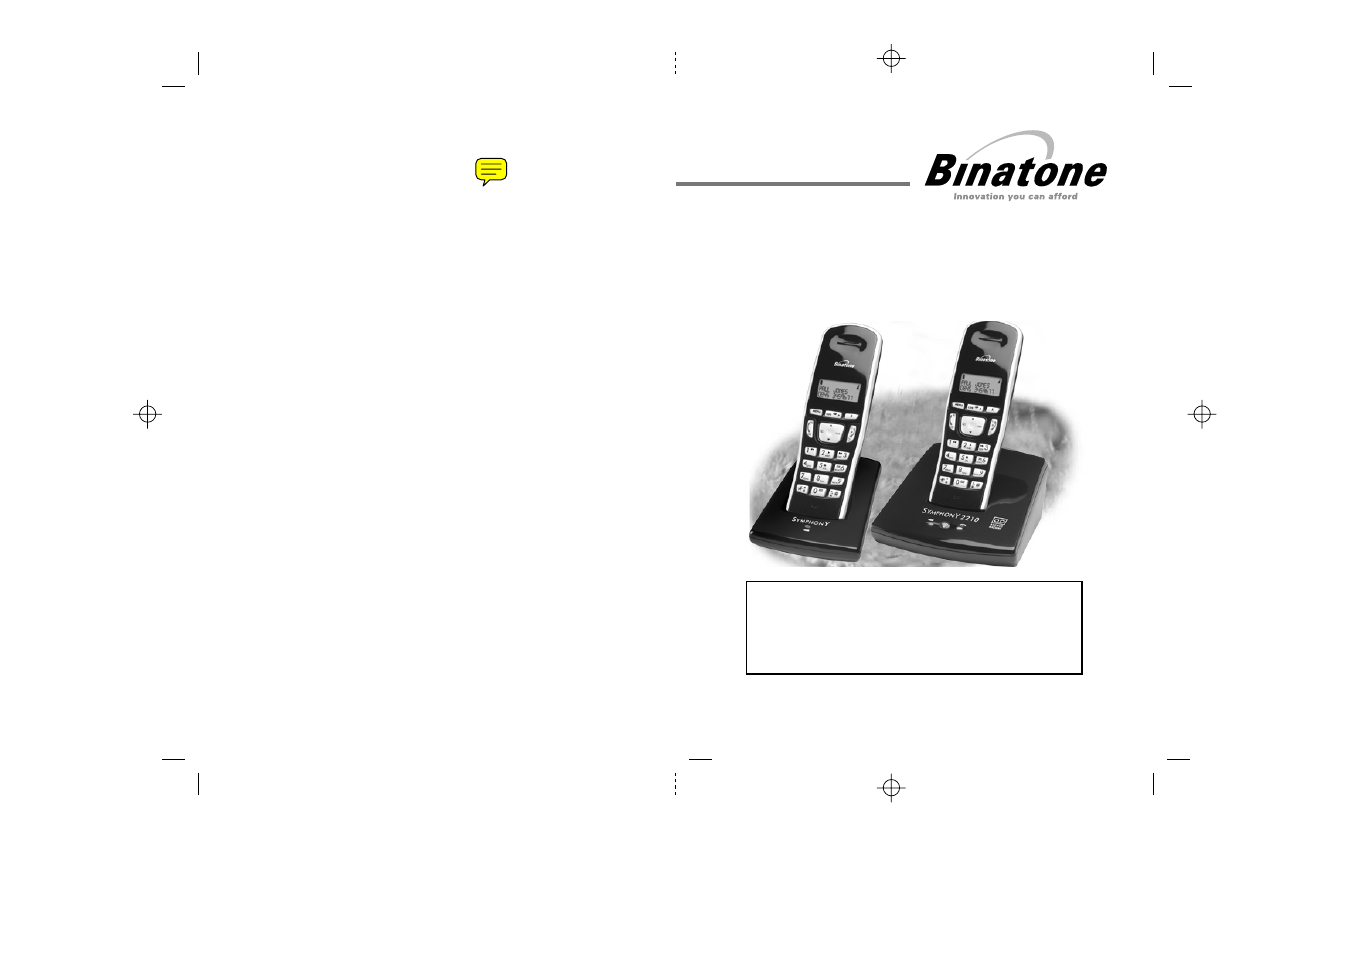 binatone 2020 cordless telephone user manual Array - binatone symphony 2210 user  manual 57 pages rh manualsdir ...